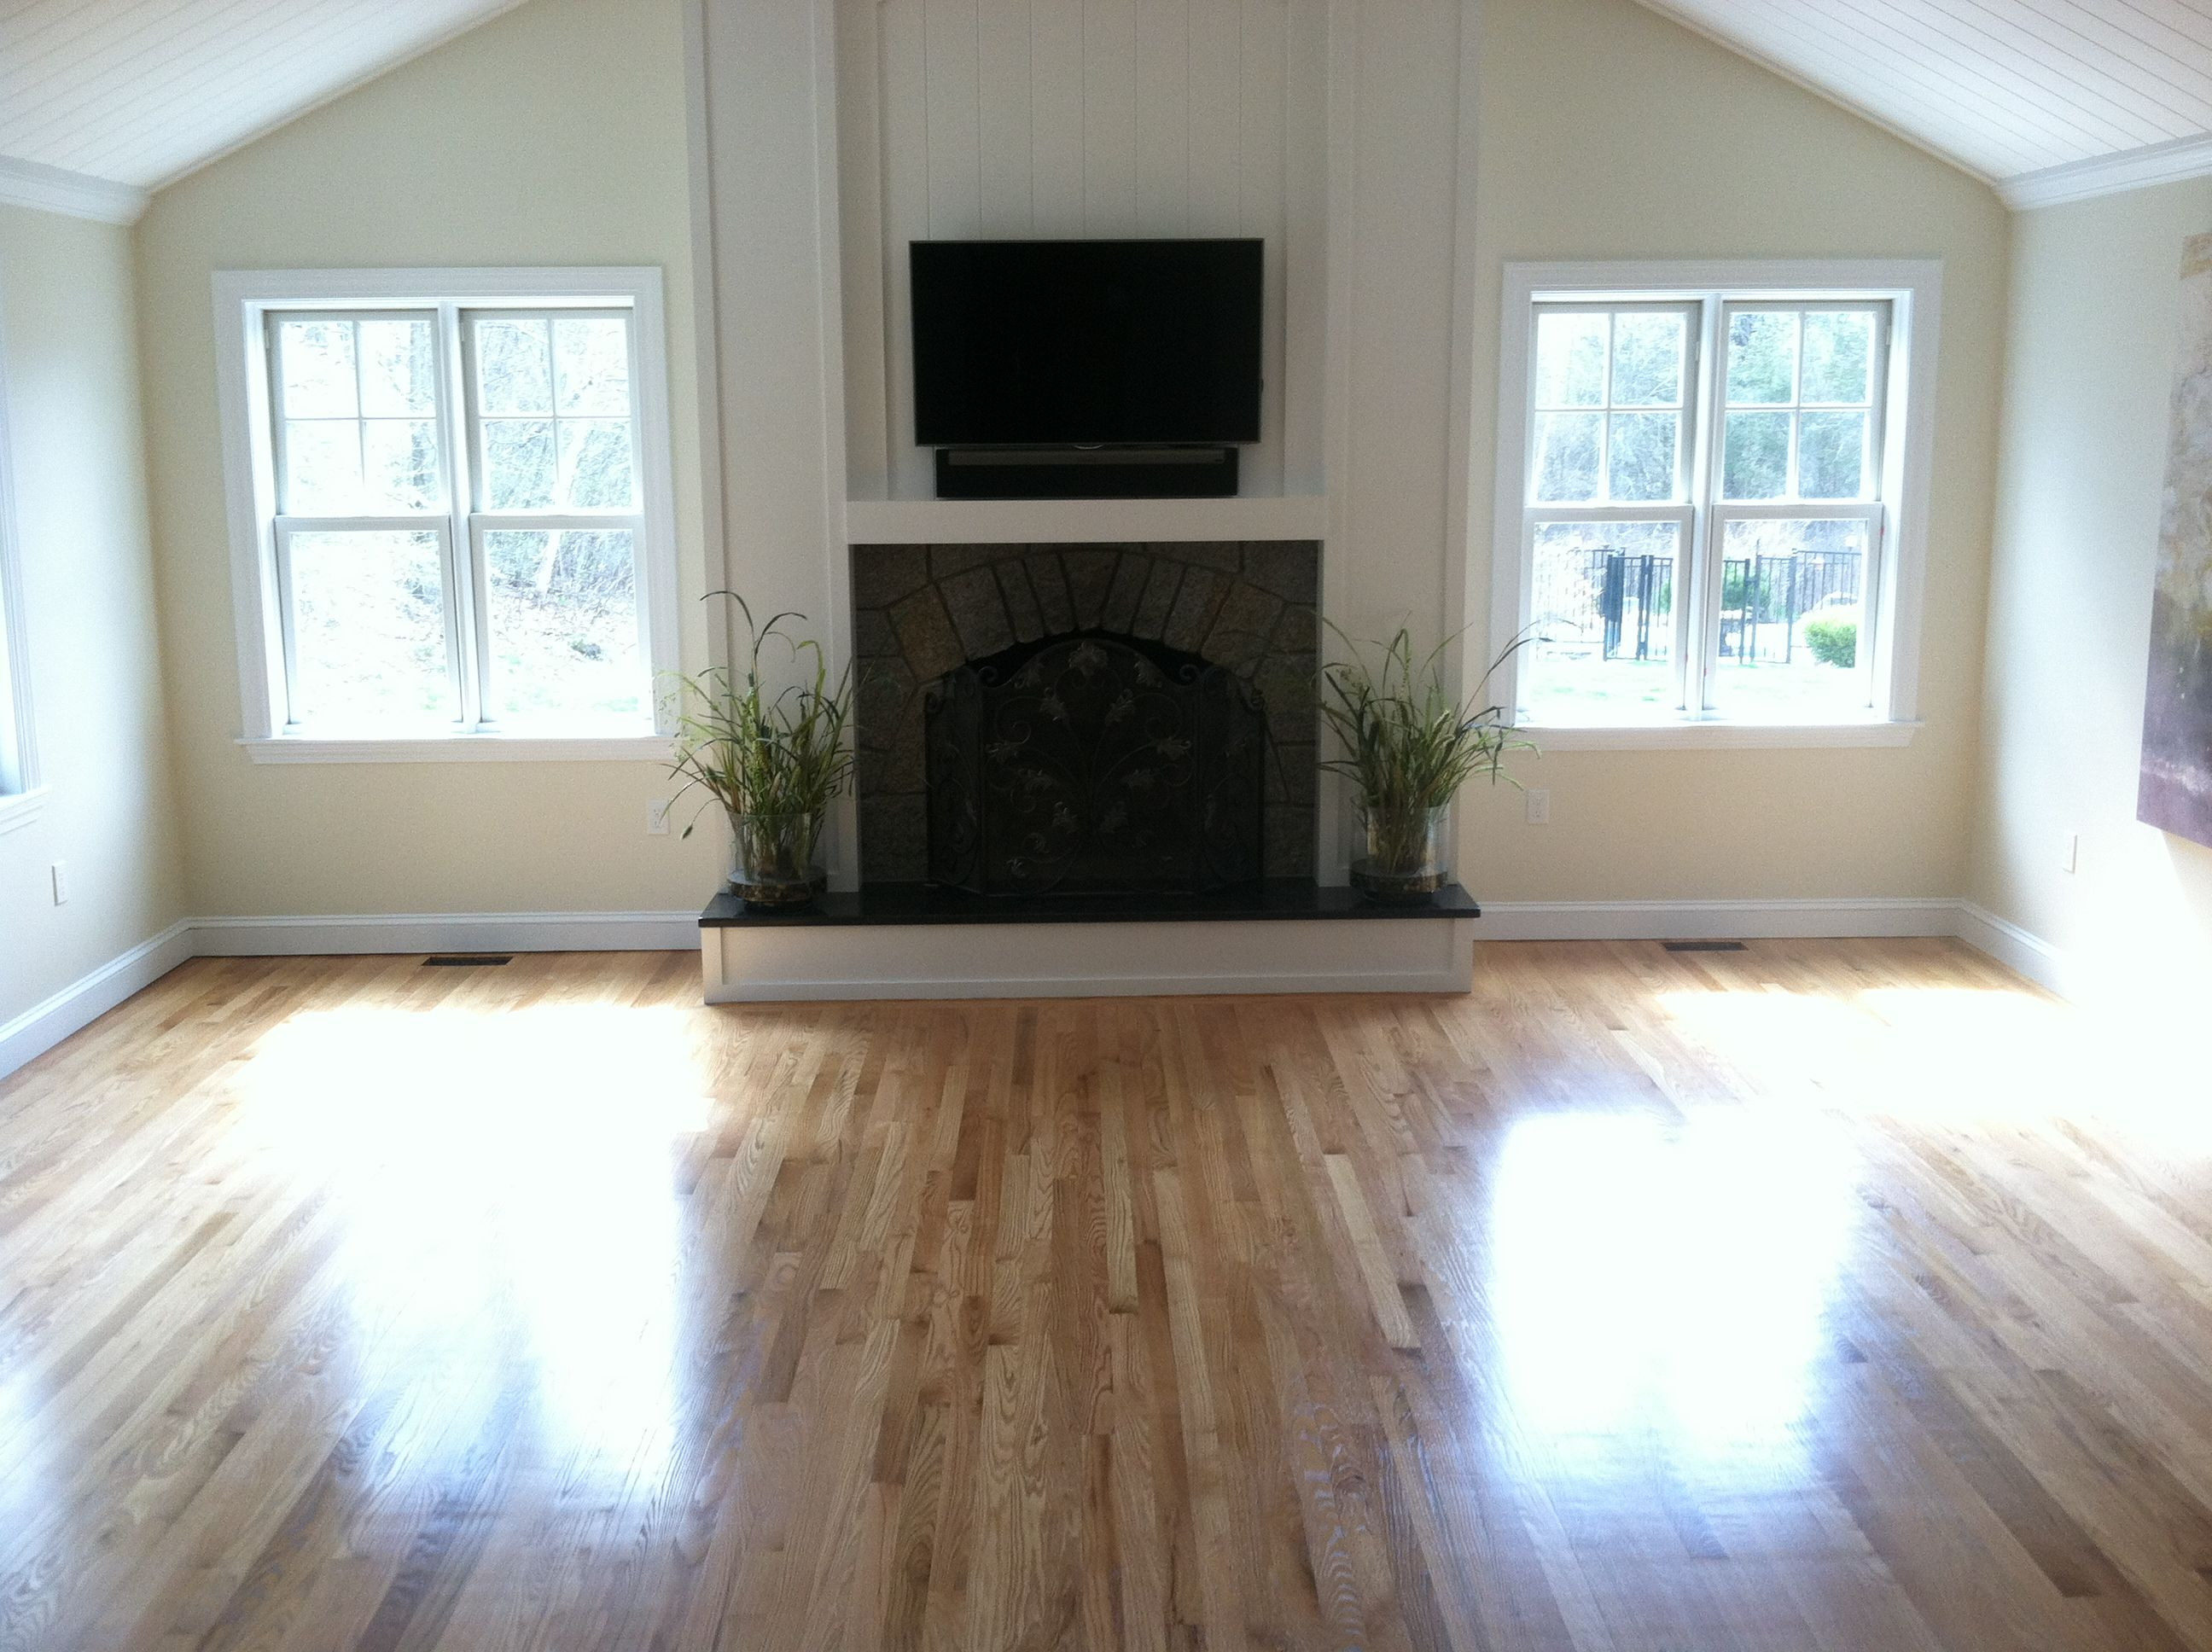 2 inch red oak hardwood flooring of select and better red oak flooring with 3 coats of bona woodline regarding select and better red oak flooring with 3 coats of bona woodline polyurethane semigloss floor finish